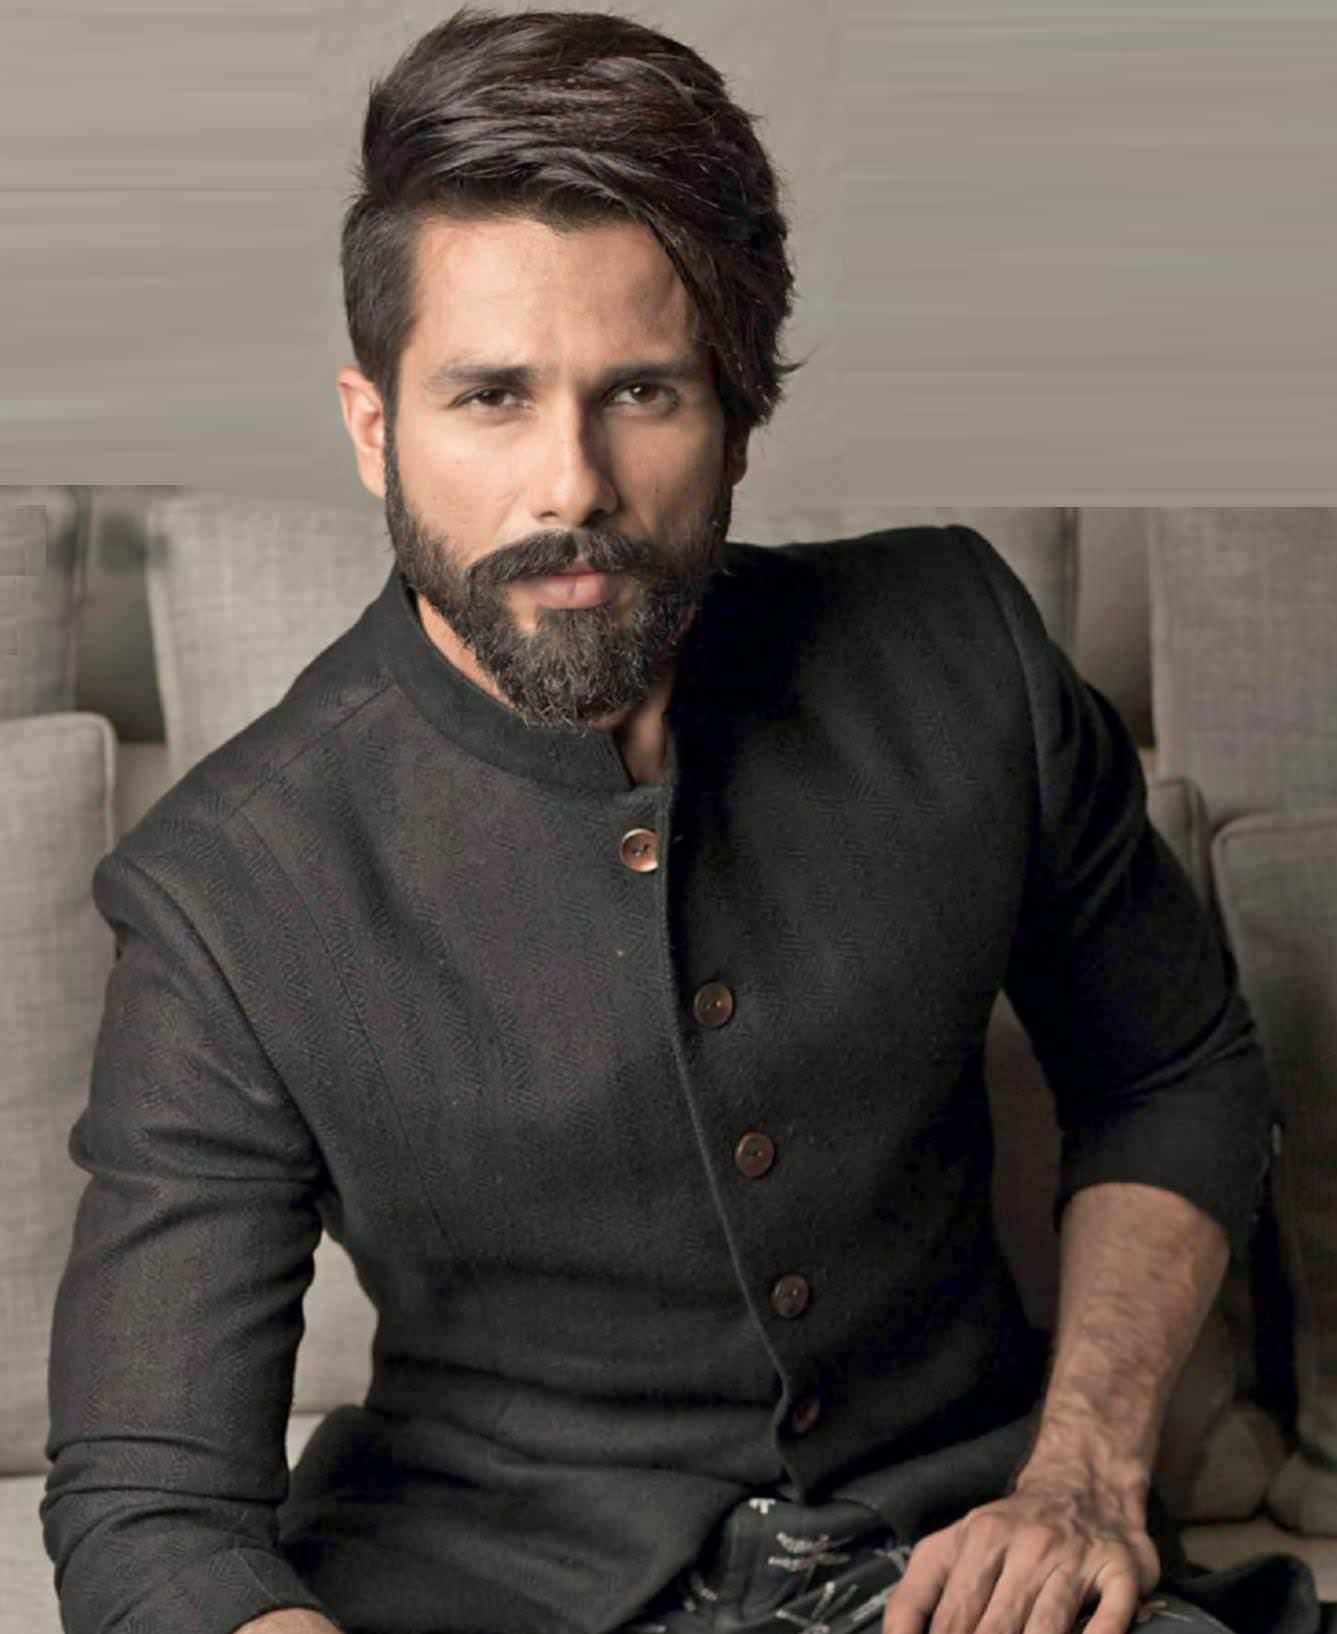 Shahid Kapoor: 'I Have A Need To Be Loved'